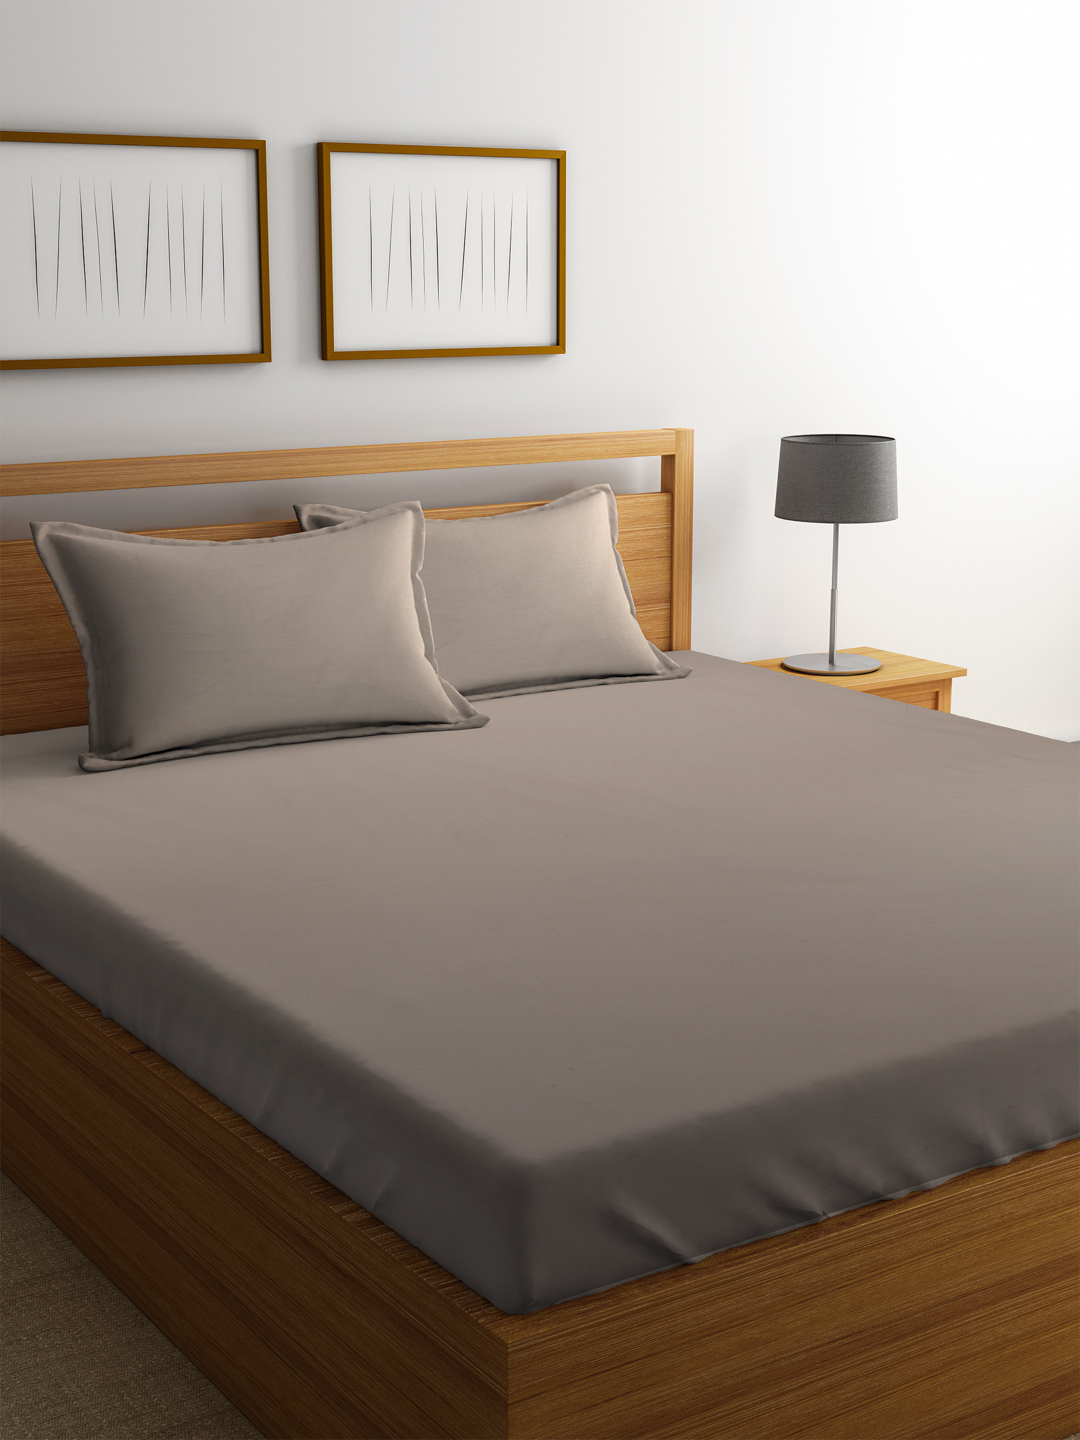 Portico Supercale Bedsheet Latte Cotton Double Bed Sheets in Brown Colour by Portico